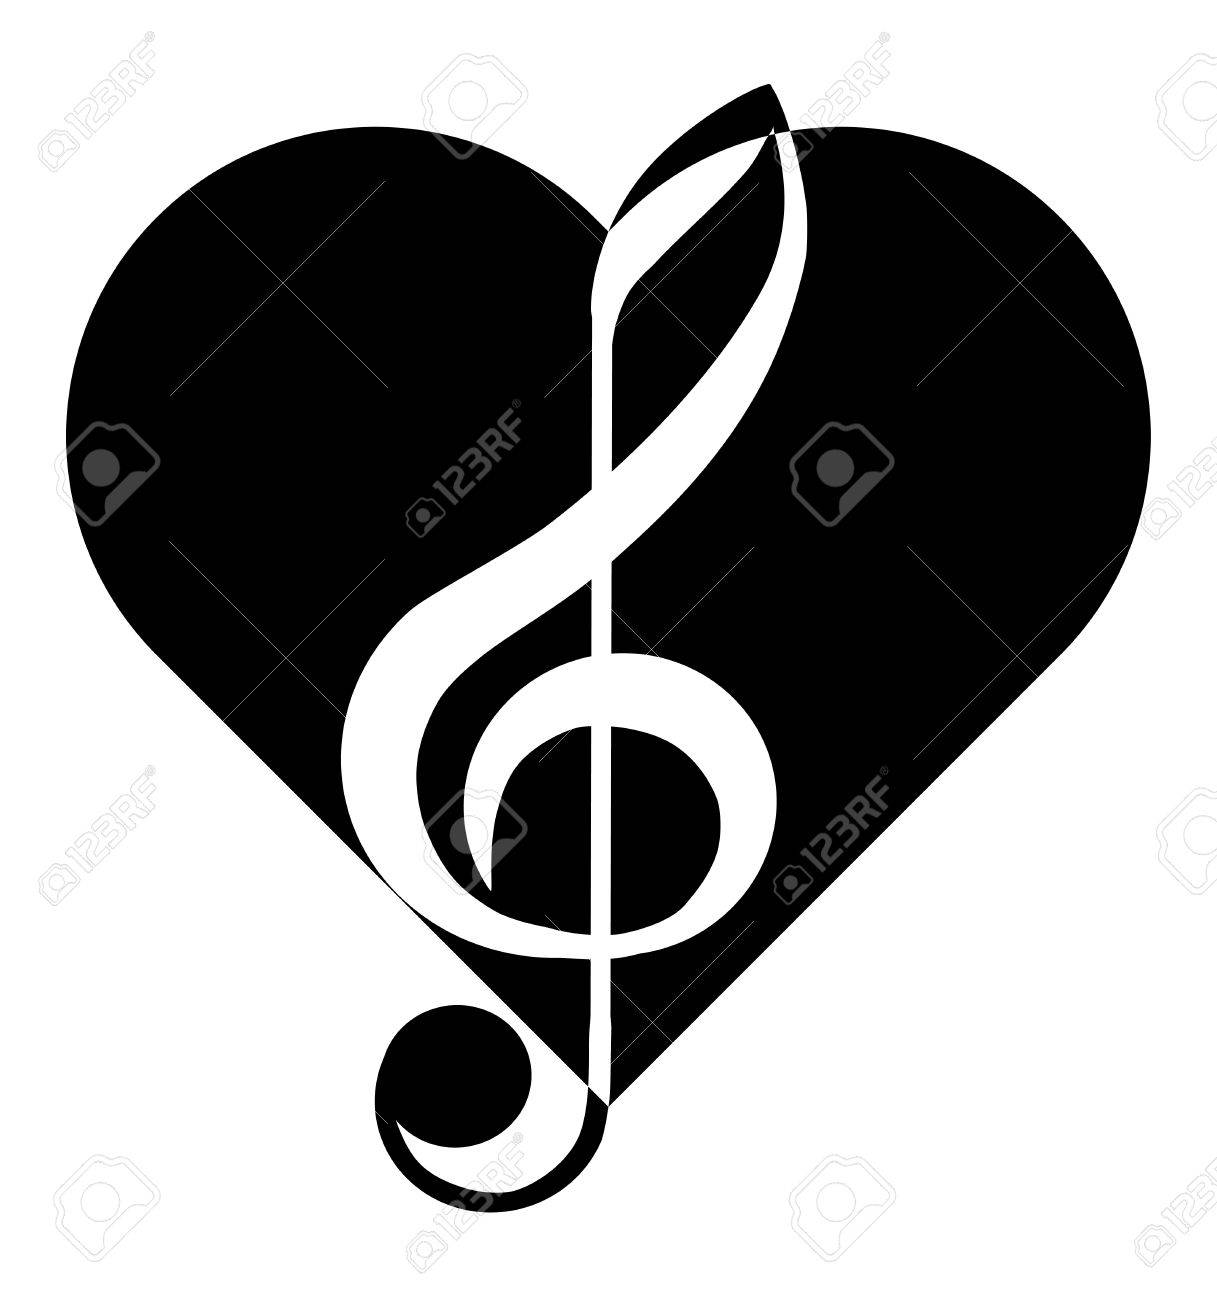 Music Treble Clef Heart Abstraction Tattoo Royalty Free